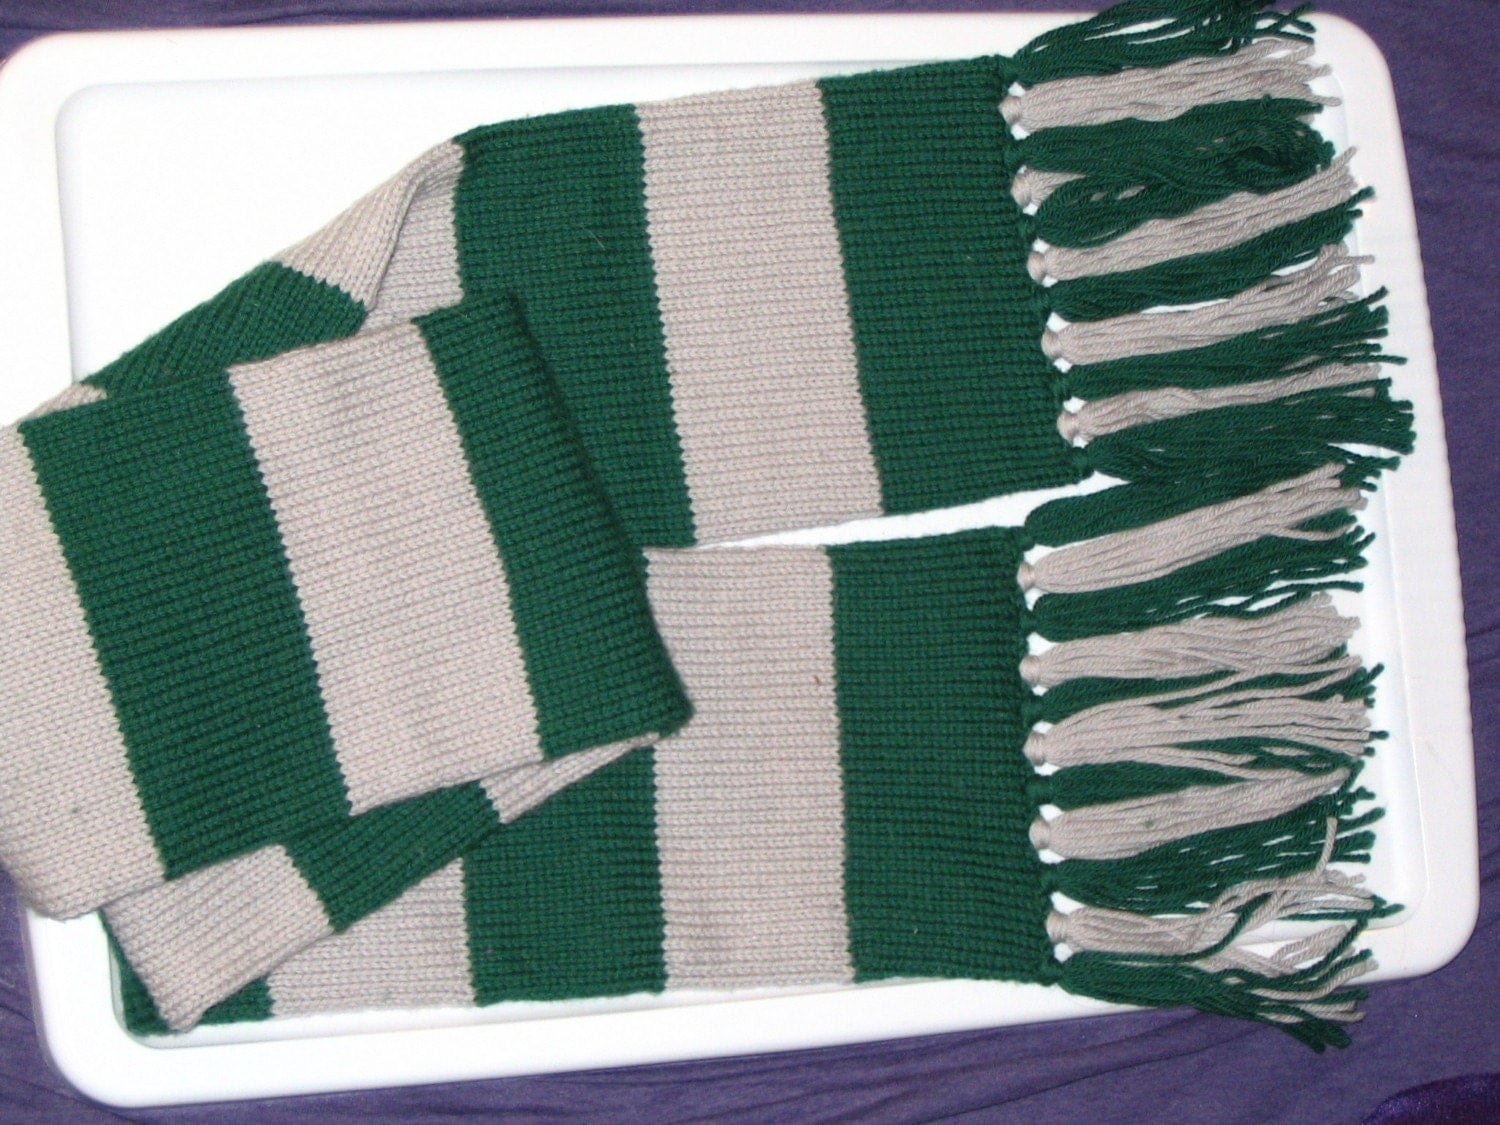 Knitting Pattern For Slytherin Scarf : Slytherin Scarf by PurpleStitching on Etsy